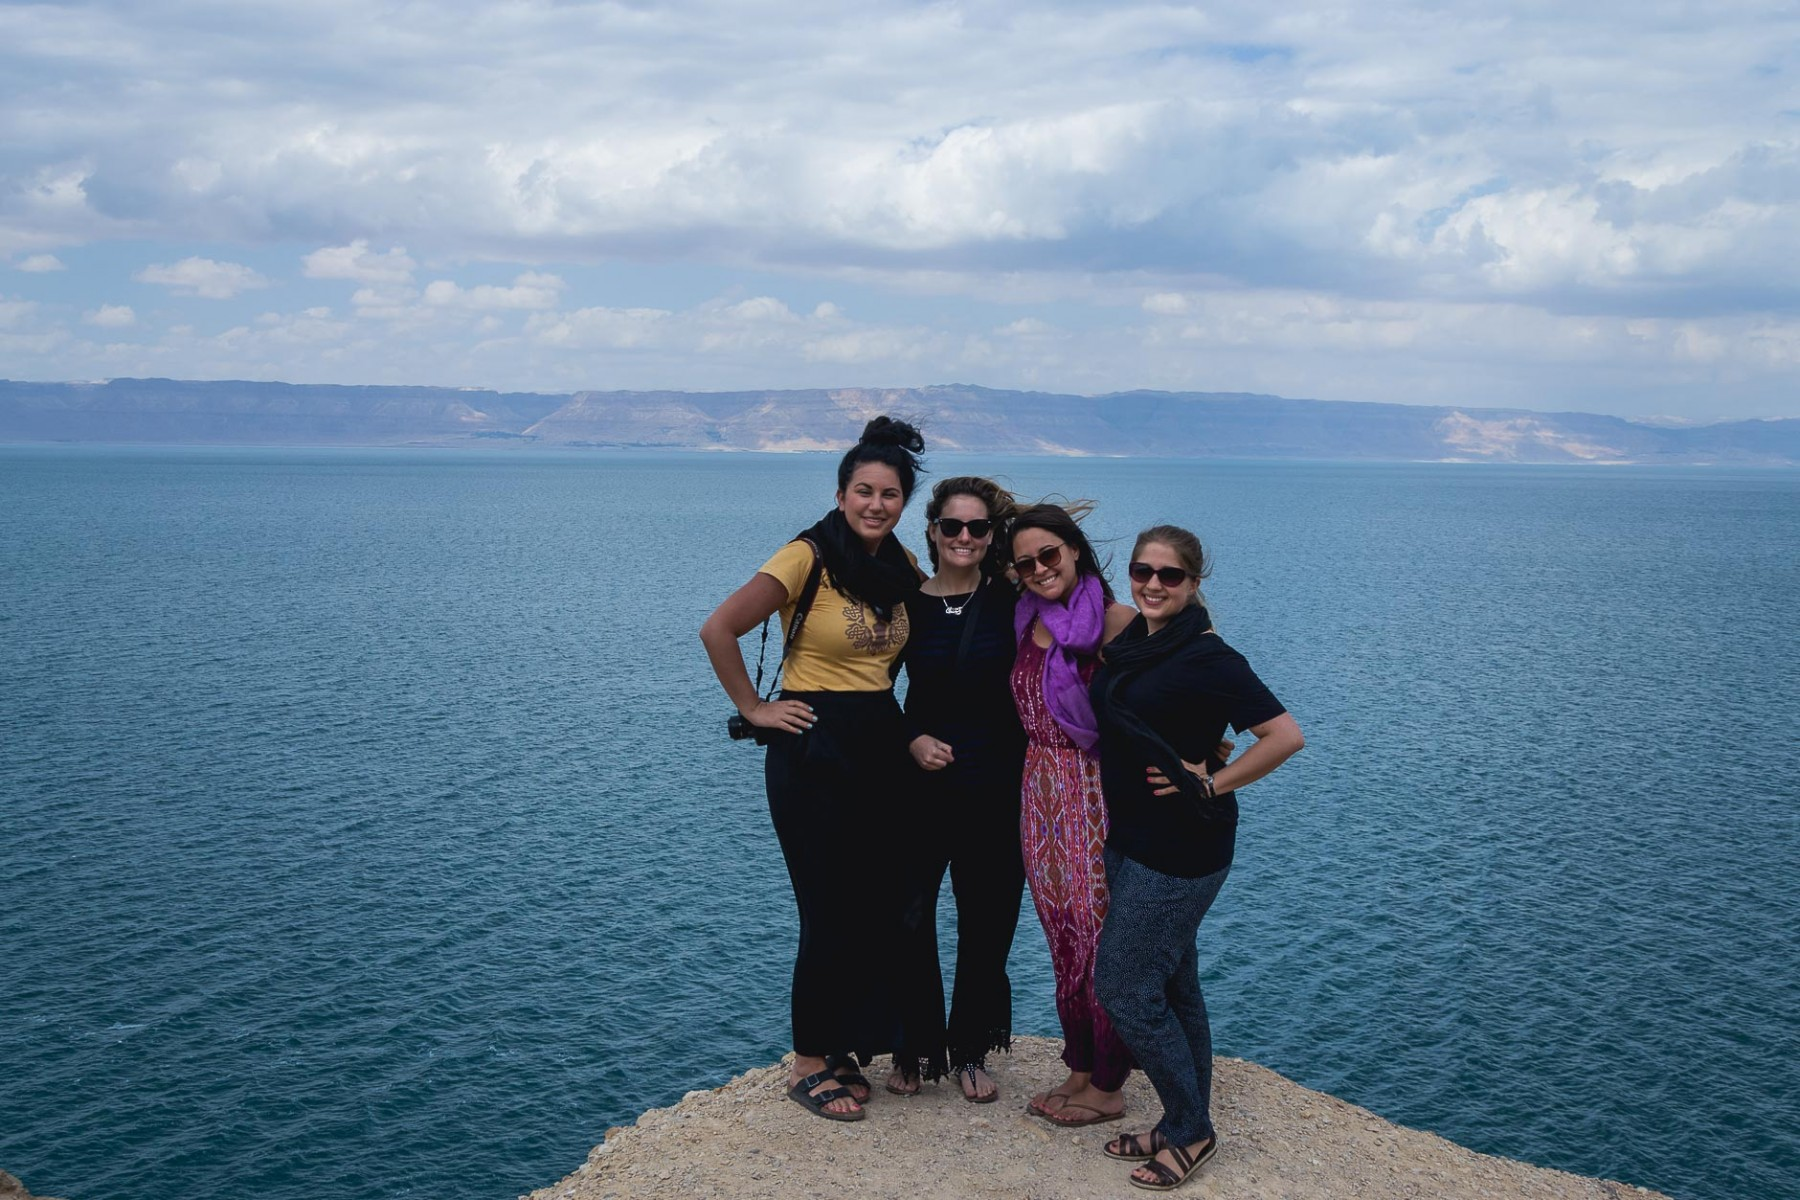 #GirlsGoneJordan by the Dead Sea